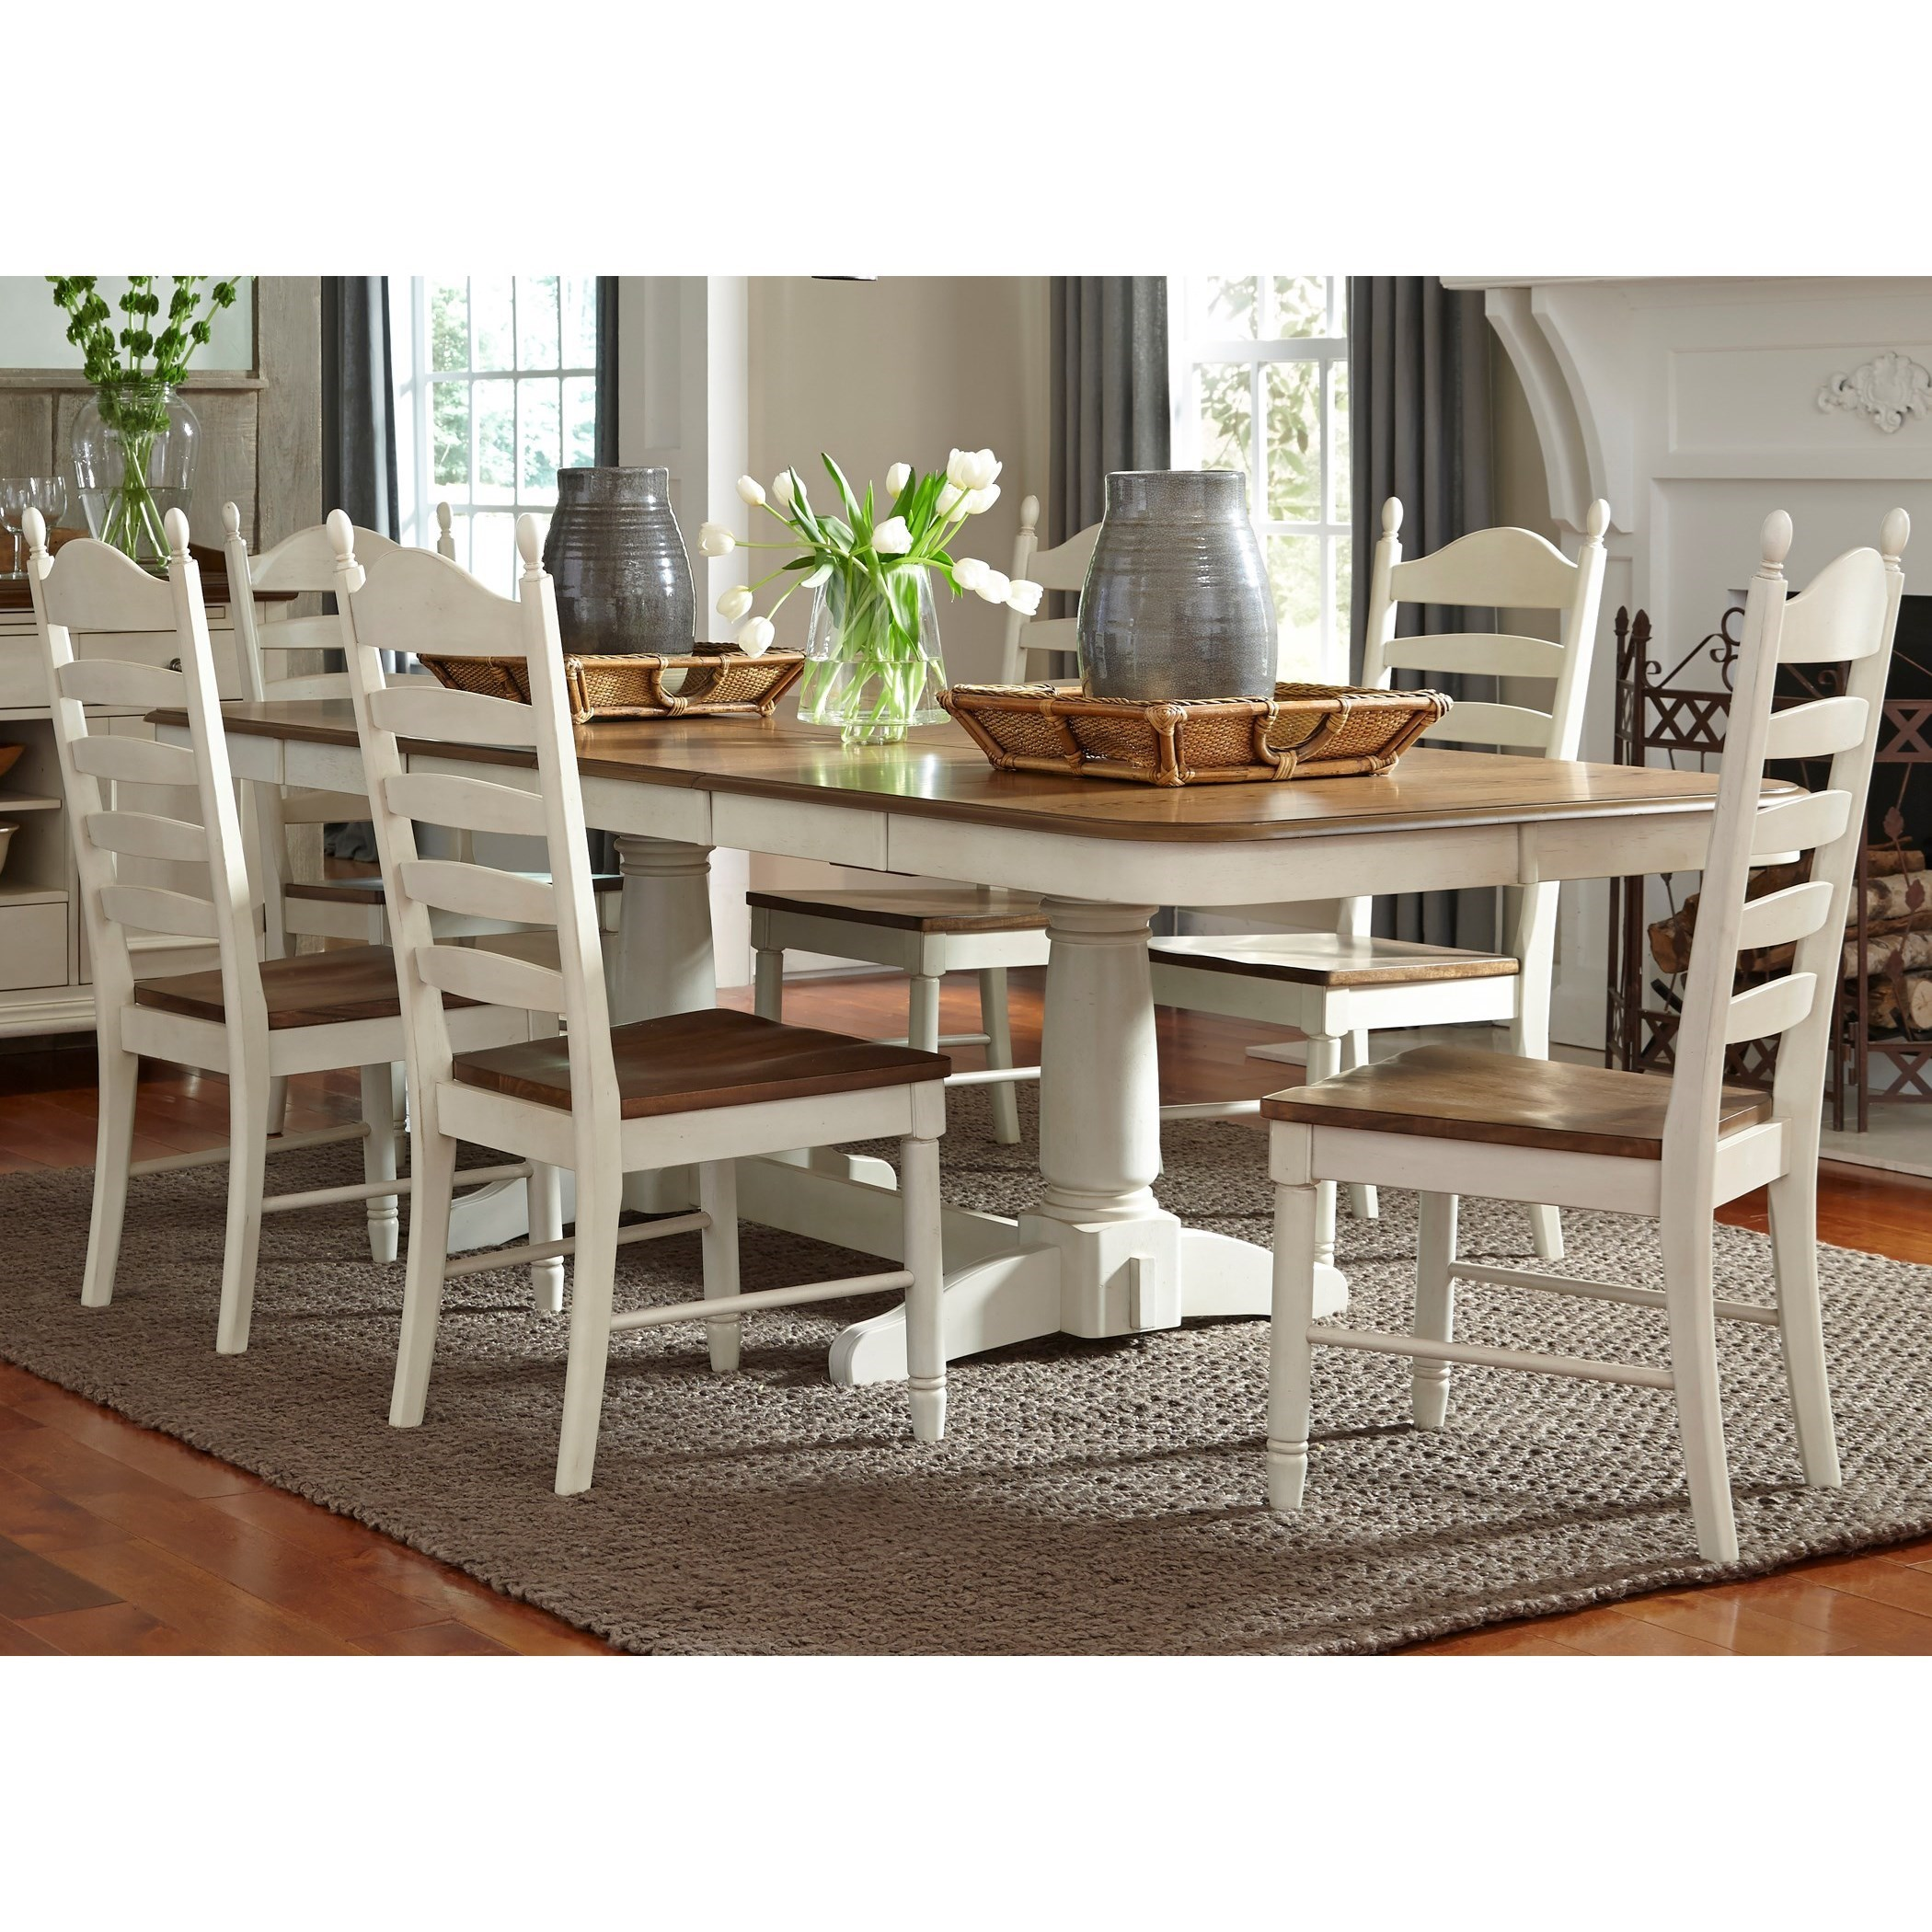 Springfield Dining 7 Piece Double Pedestal Table & Chair